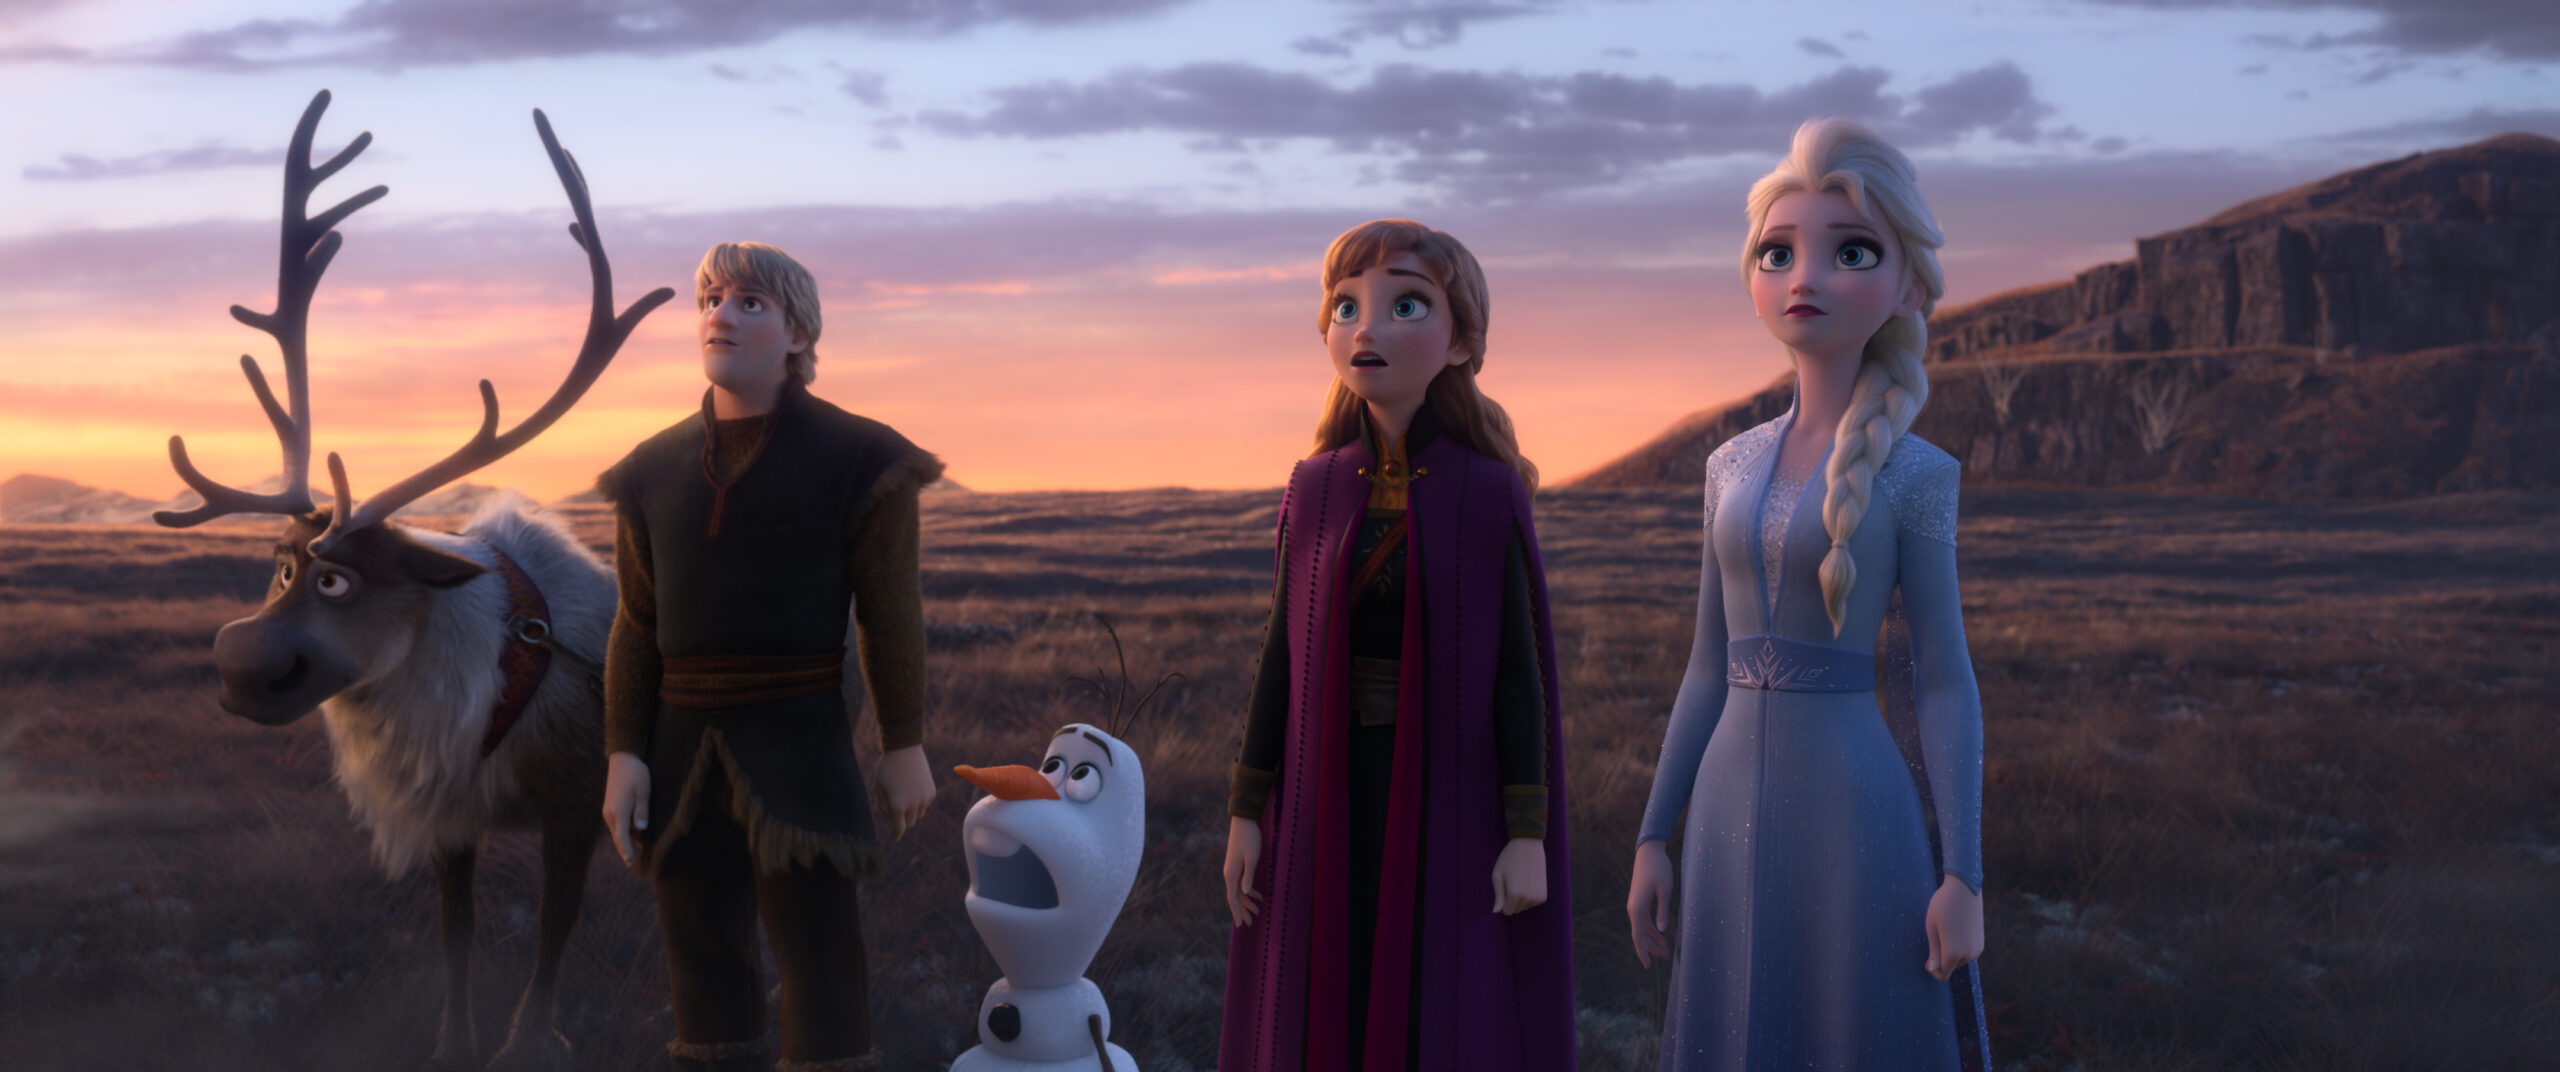 Frozen 2 is an Epic Love Story in More Ways Than One